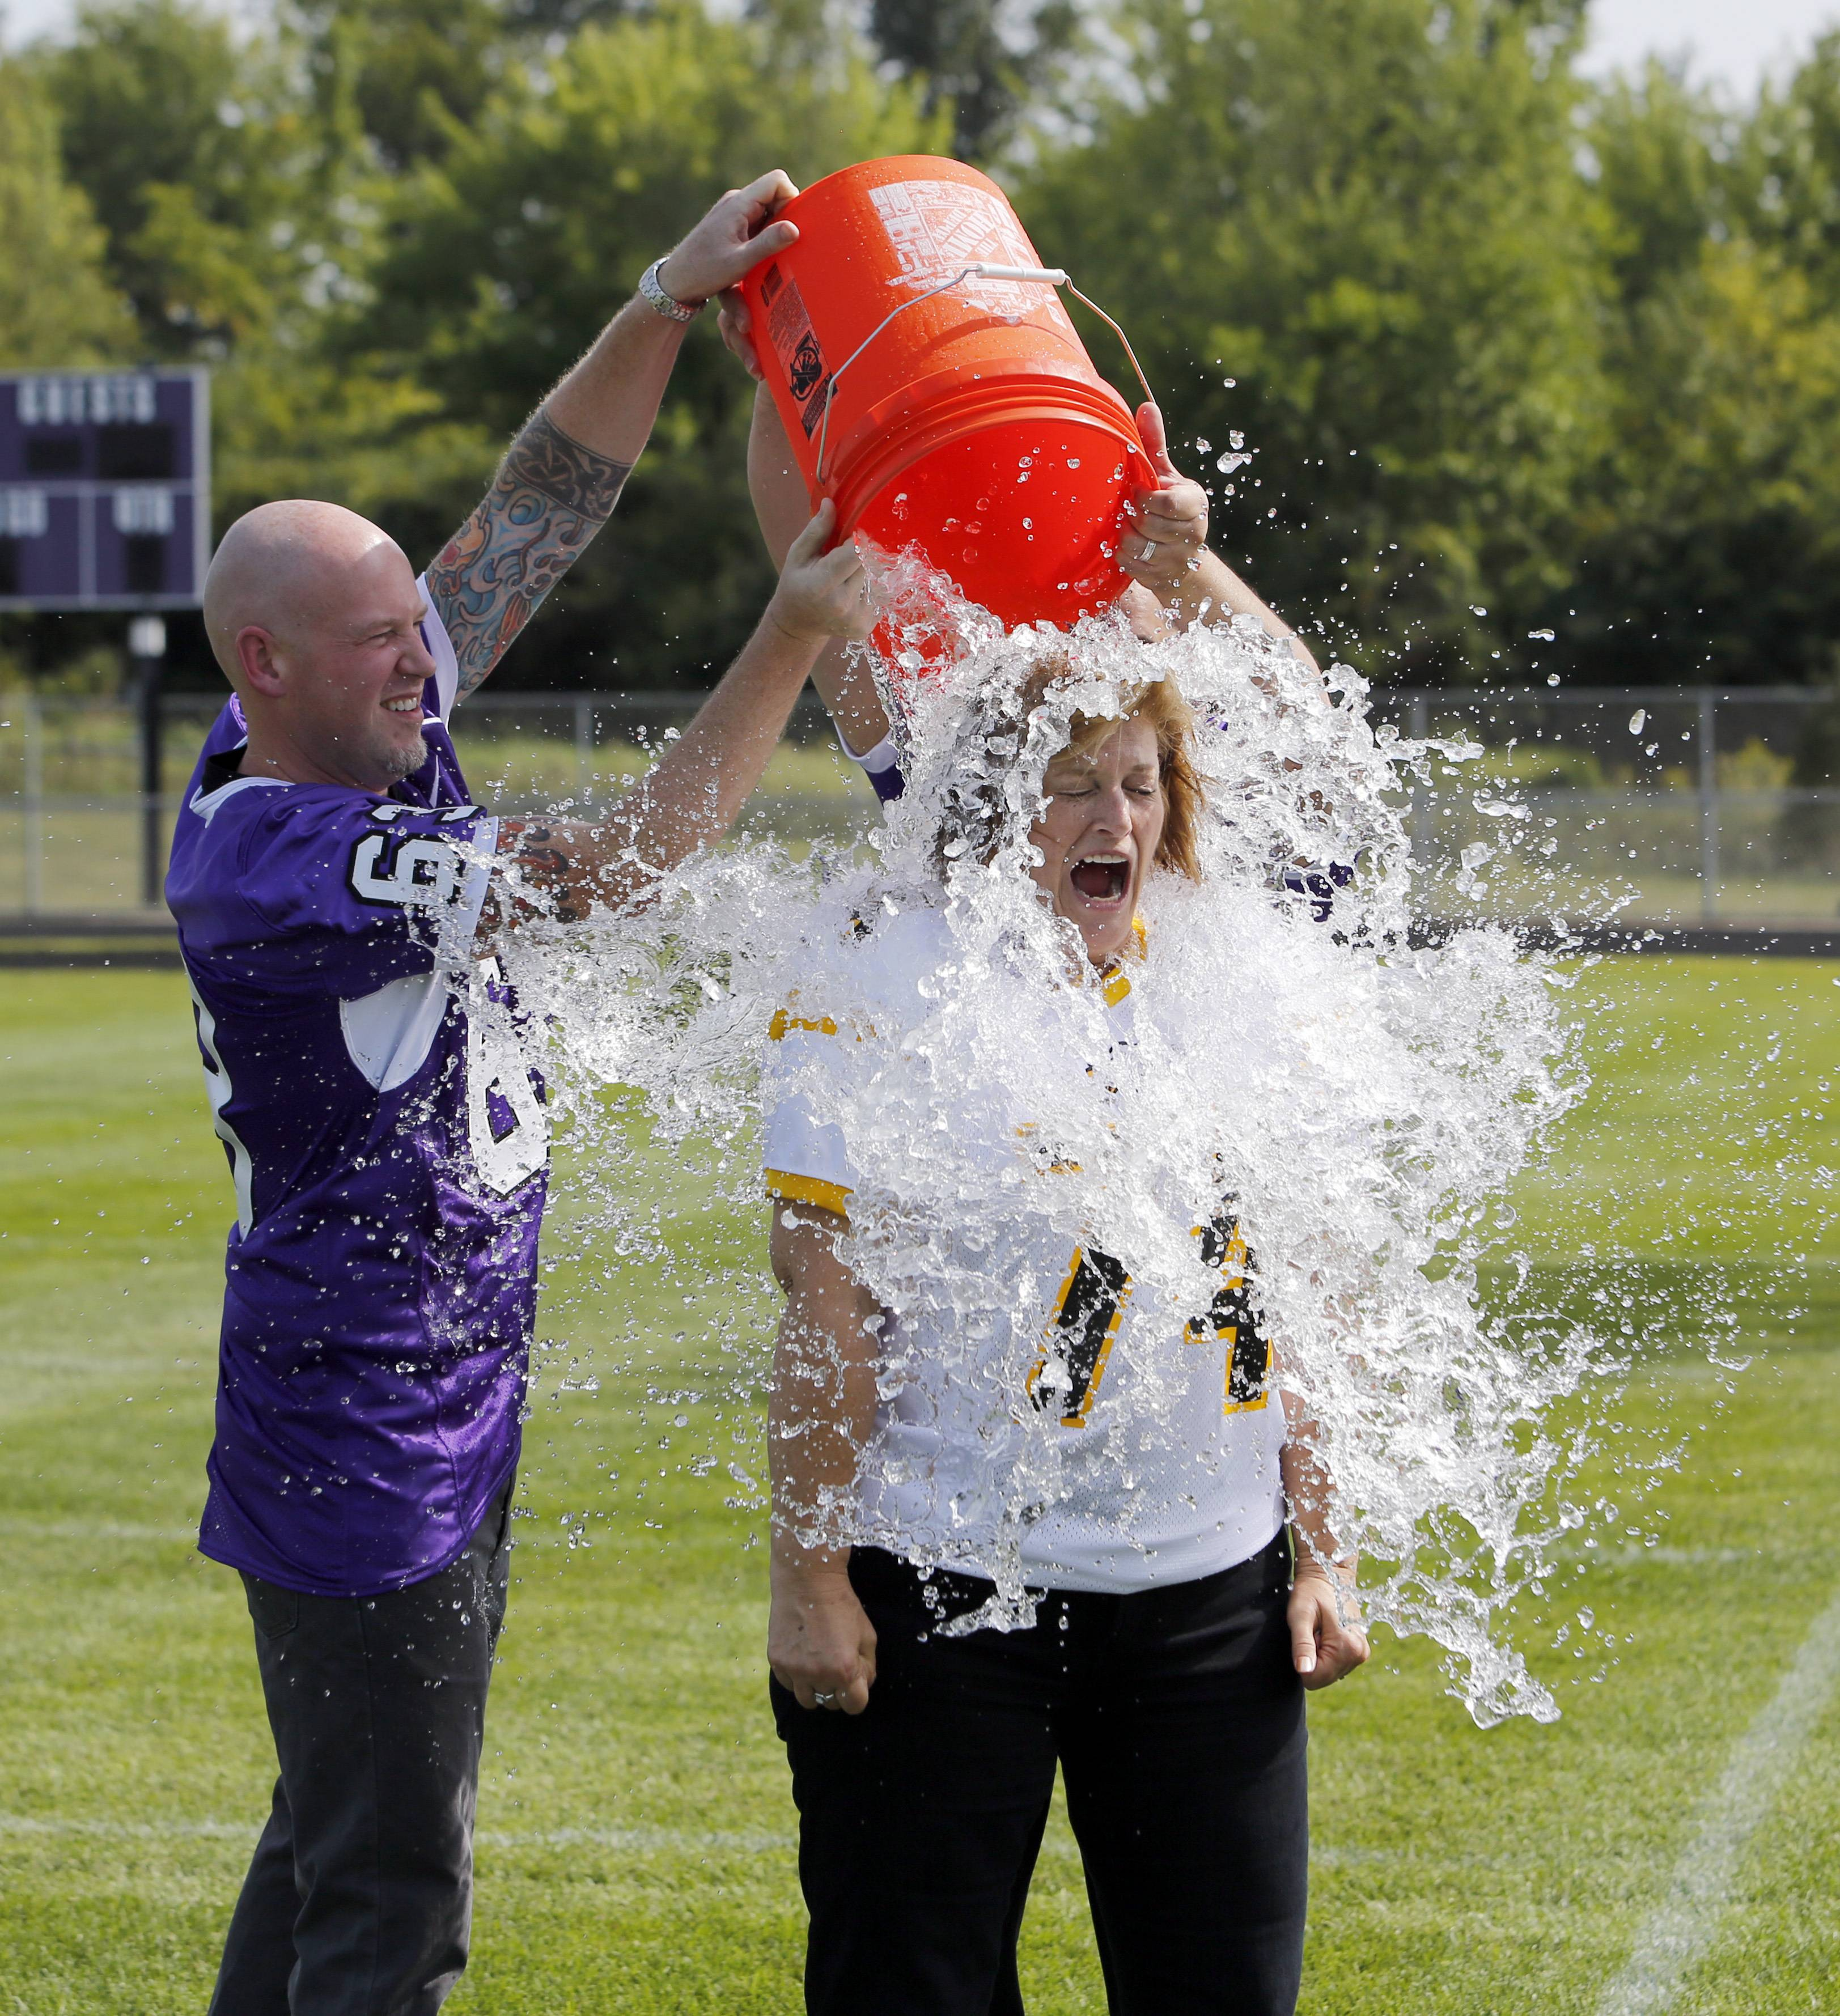 District 300 Associate Superintendent Sarah Kedroski is doused with a 5-gallon bucket of ice water by Ben Churchill, Assistant Superintendent for High School Teaching and Learning Superintendent's Cabinet, while taking the ALS ice bucket challenge Friday at Hampshire High School.